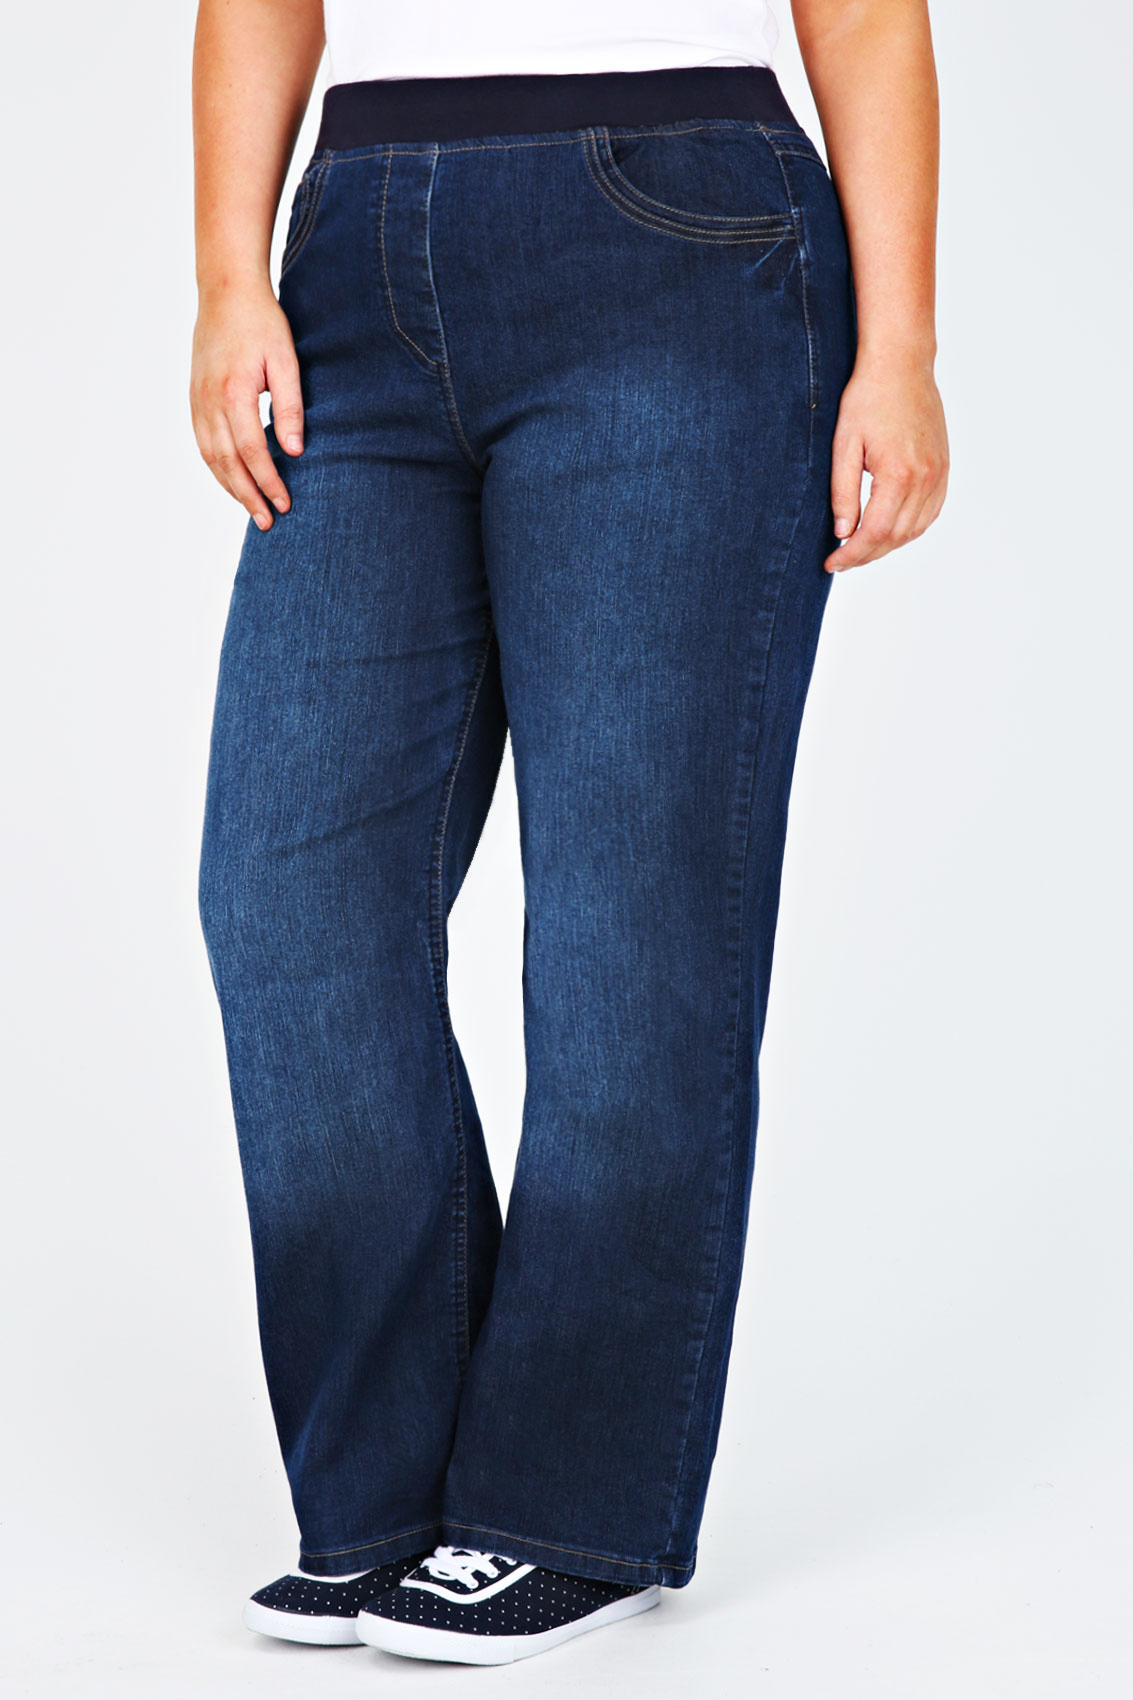 Our plus size jeans range includes a great choice of washes, including stonewash, dark blue and even tie-dye, and with sizes from you'll find the perfect fit. We even have on-trend high-waist jeans and jeggings to bring your wardrobe up to date.